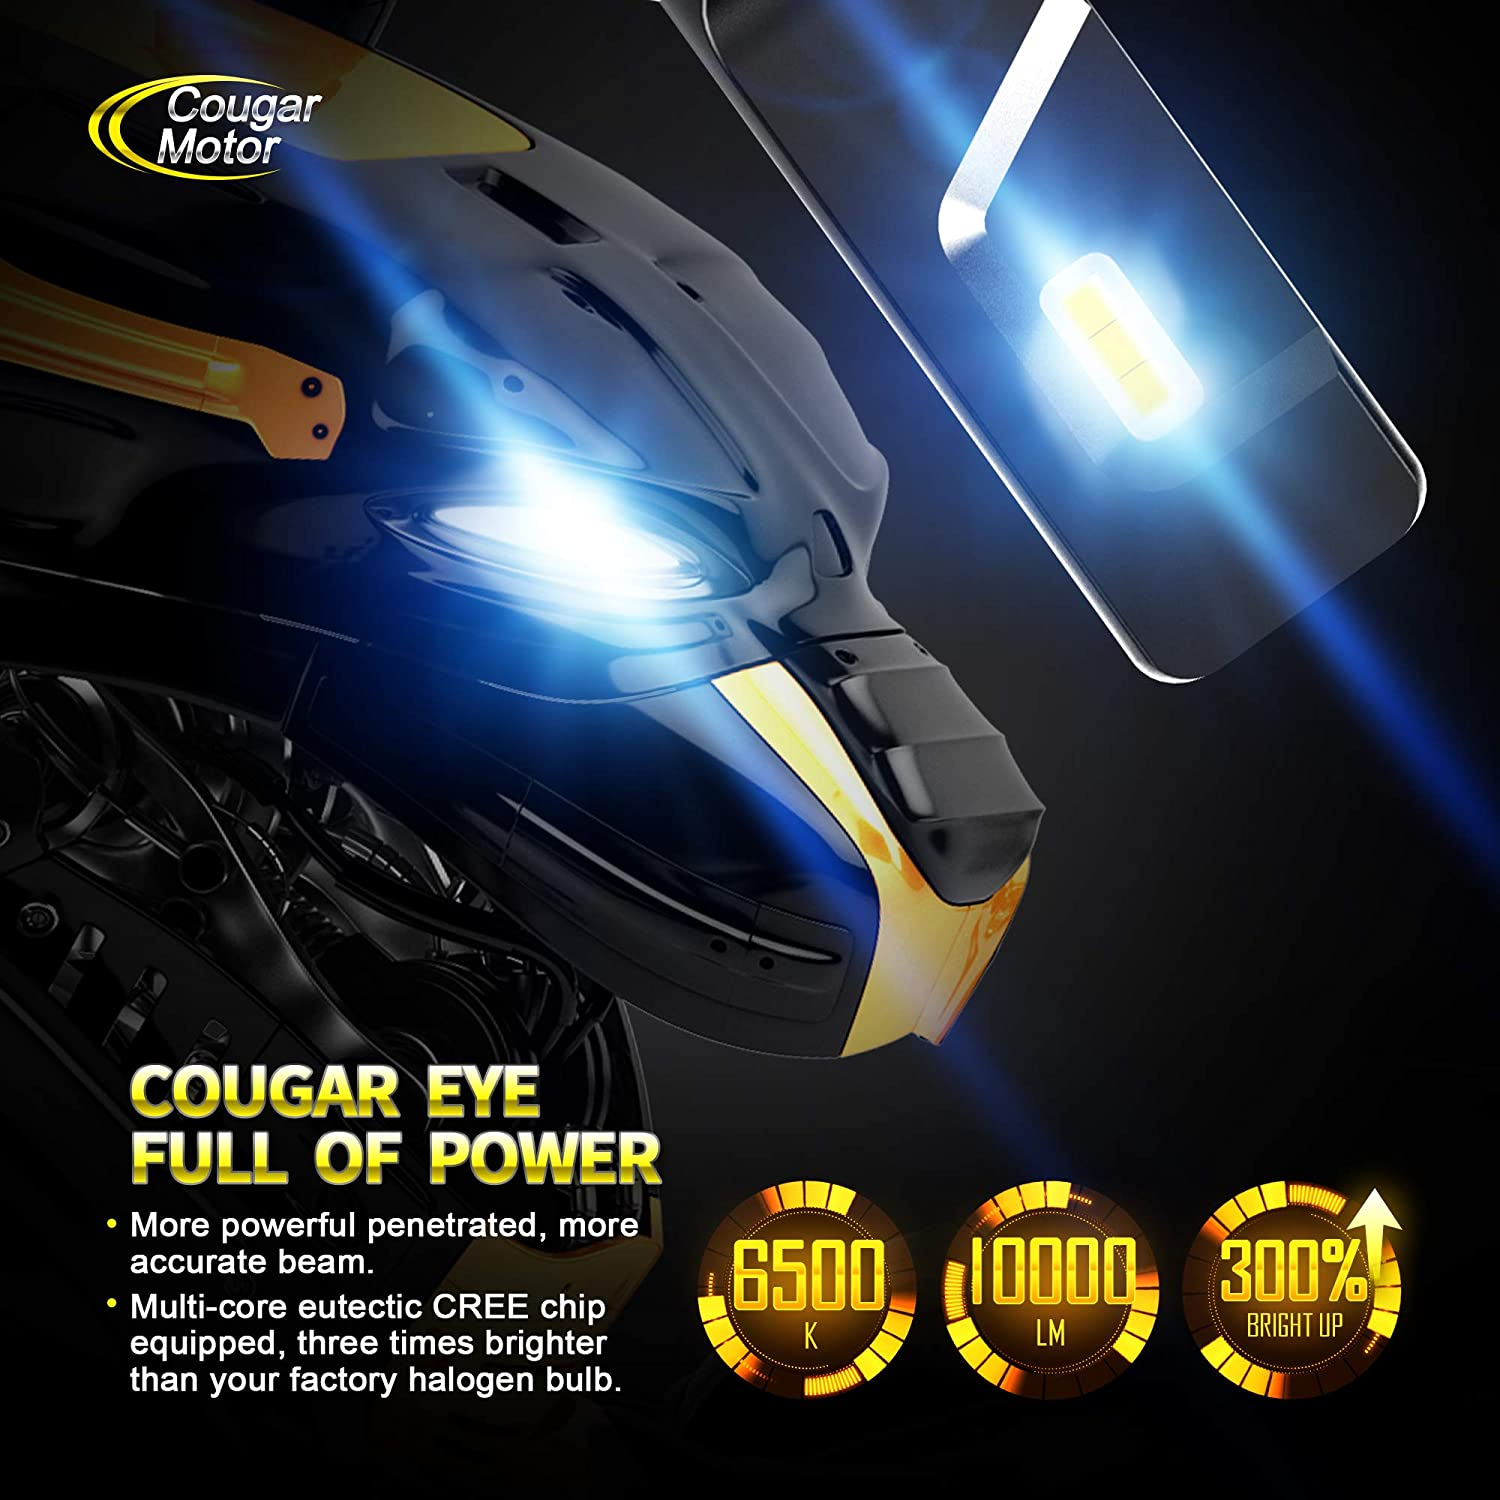 Cougar Motor X-Small H7 LED Headlight Bulb 10000Lm 6500K All-in-One Conversion Kit Cool White CREE